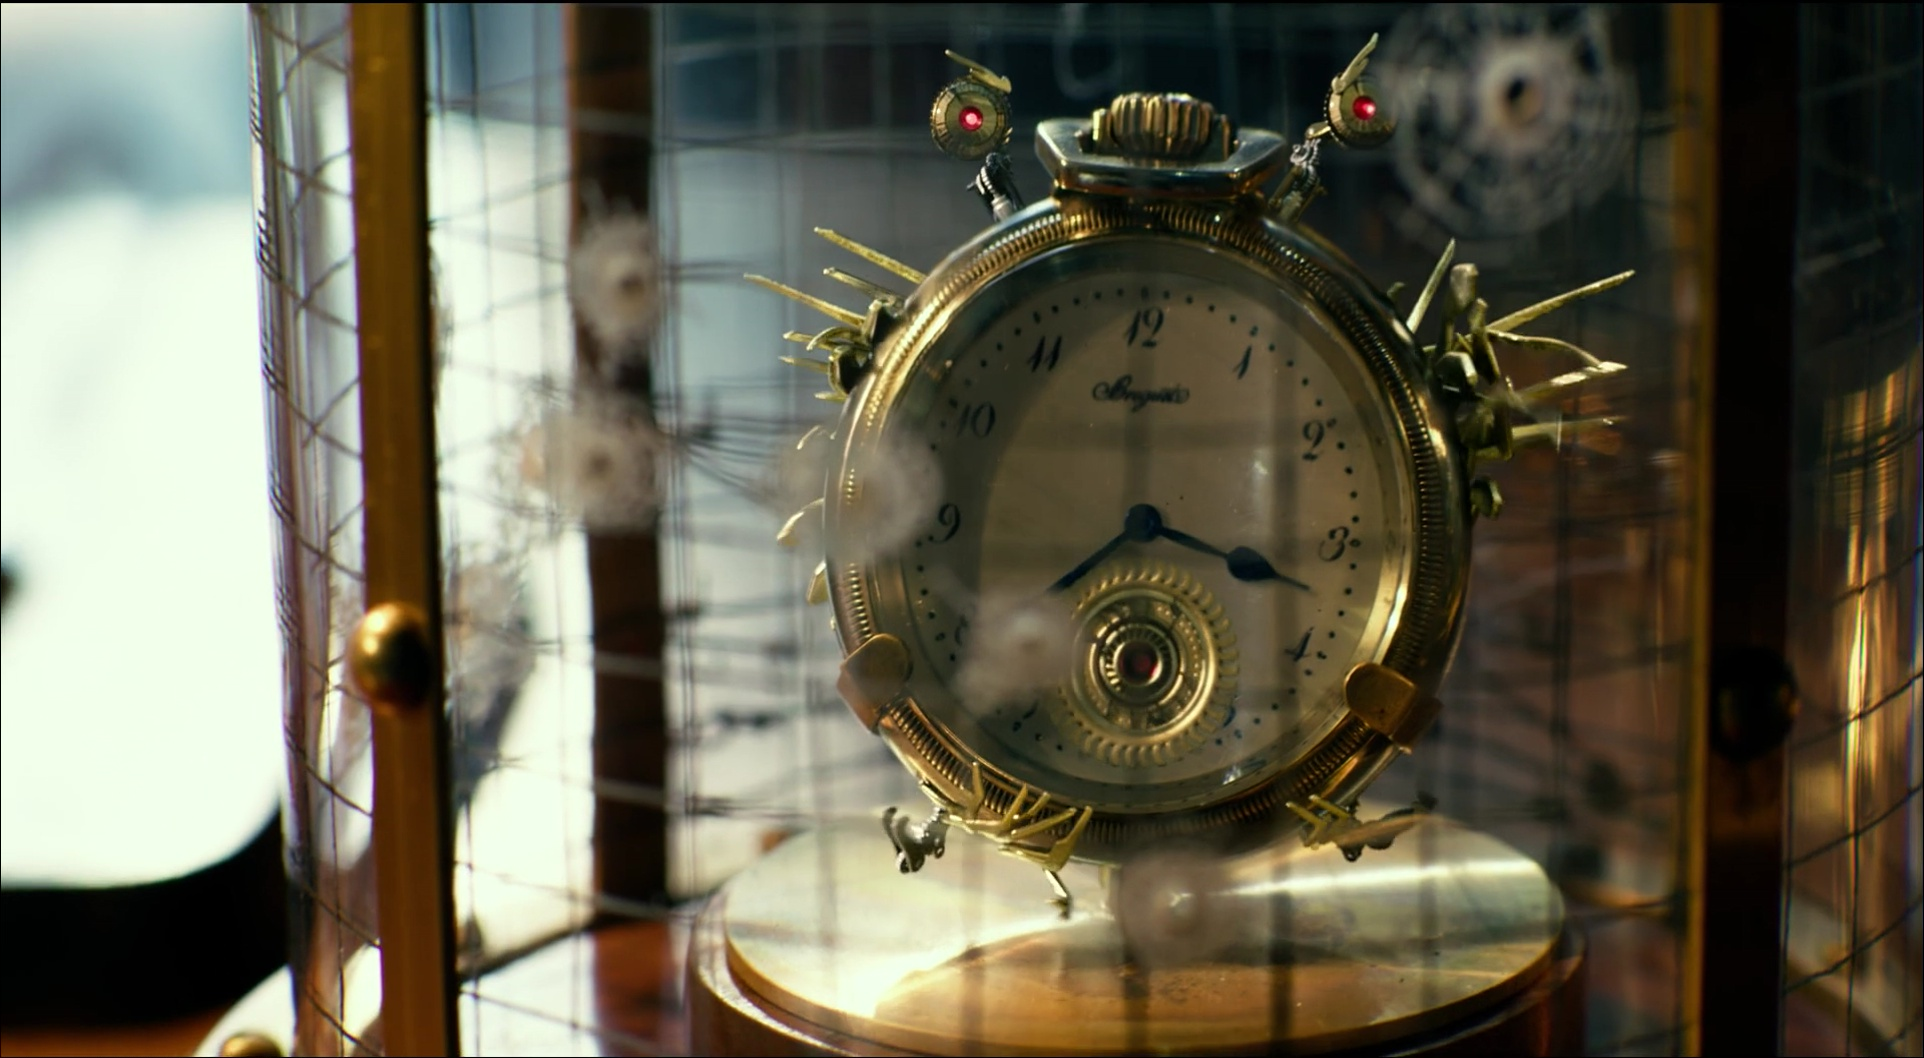 Breguet clock in transformers 5 the last knight 2017 movie scenes breguet clock in transformers 5 the last knight 2017 movie product placement amipublicfo Choice Image